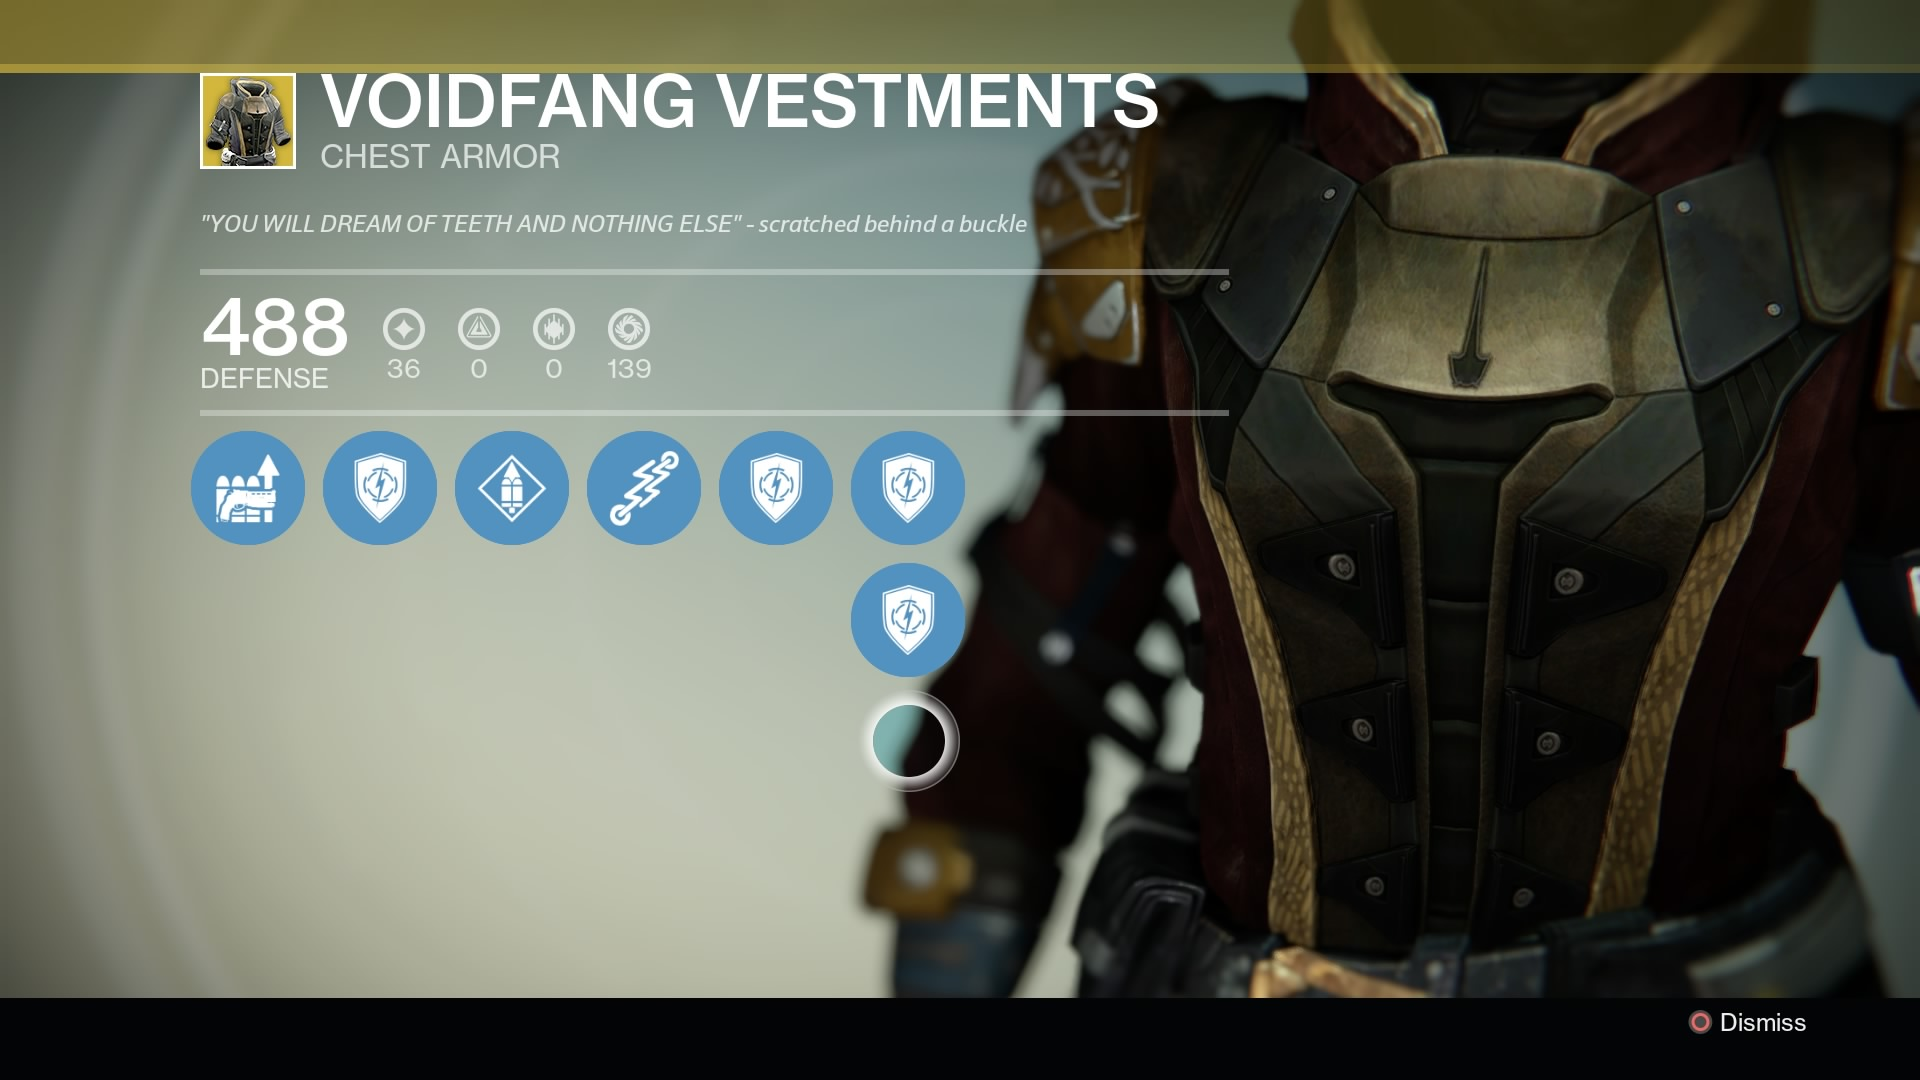 Voidfang Vestments